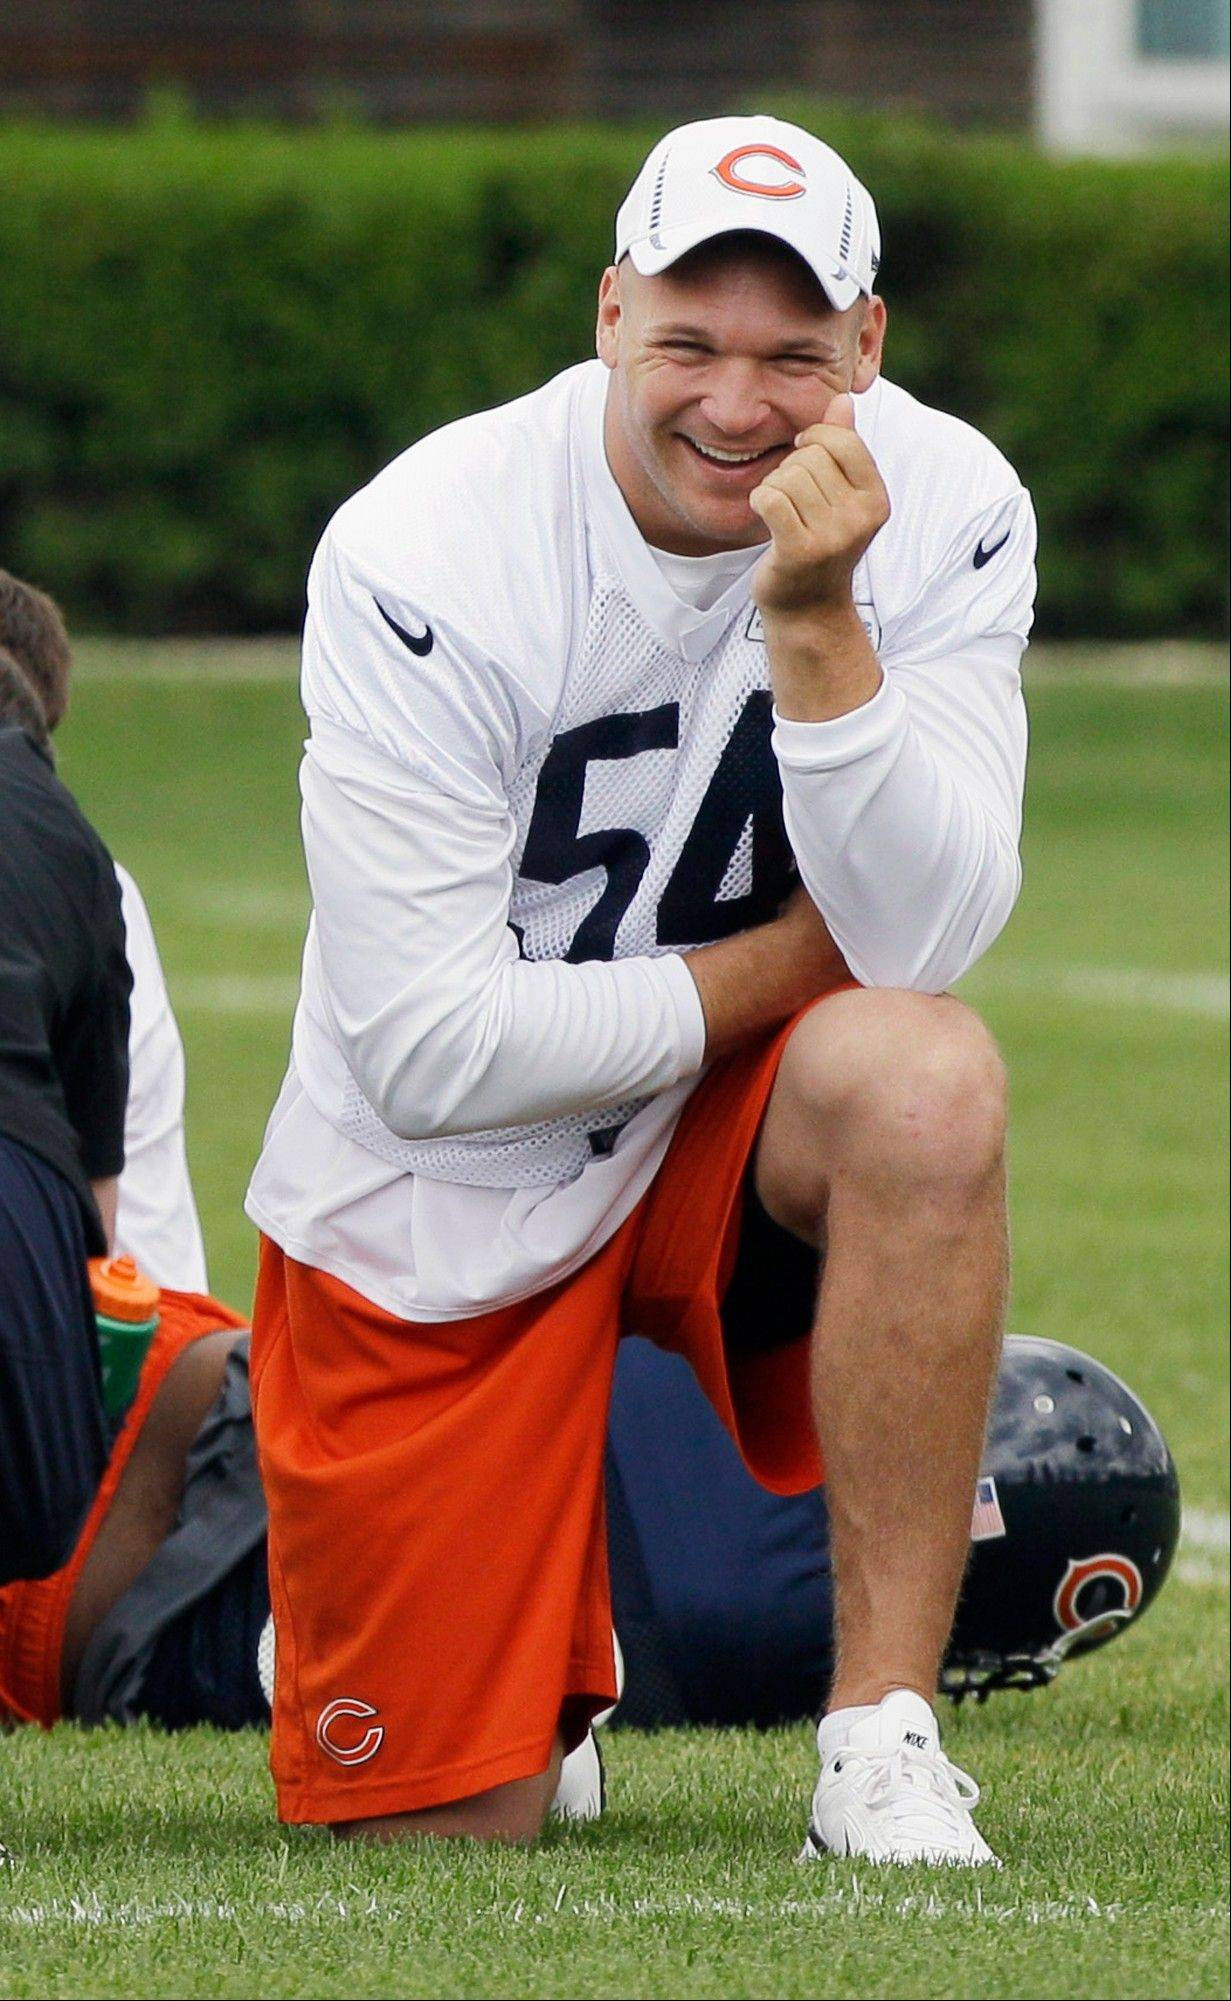 Urlacher not worried about making Sept. 9 return